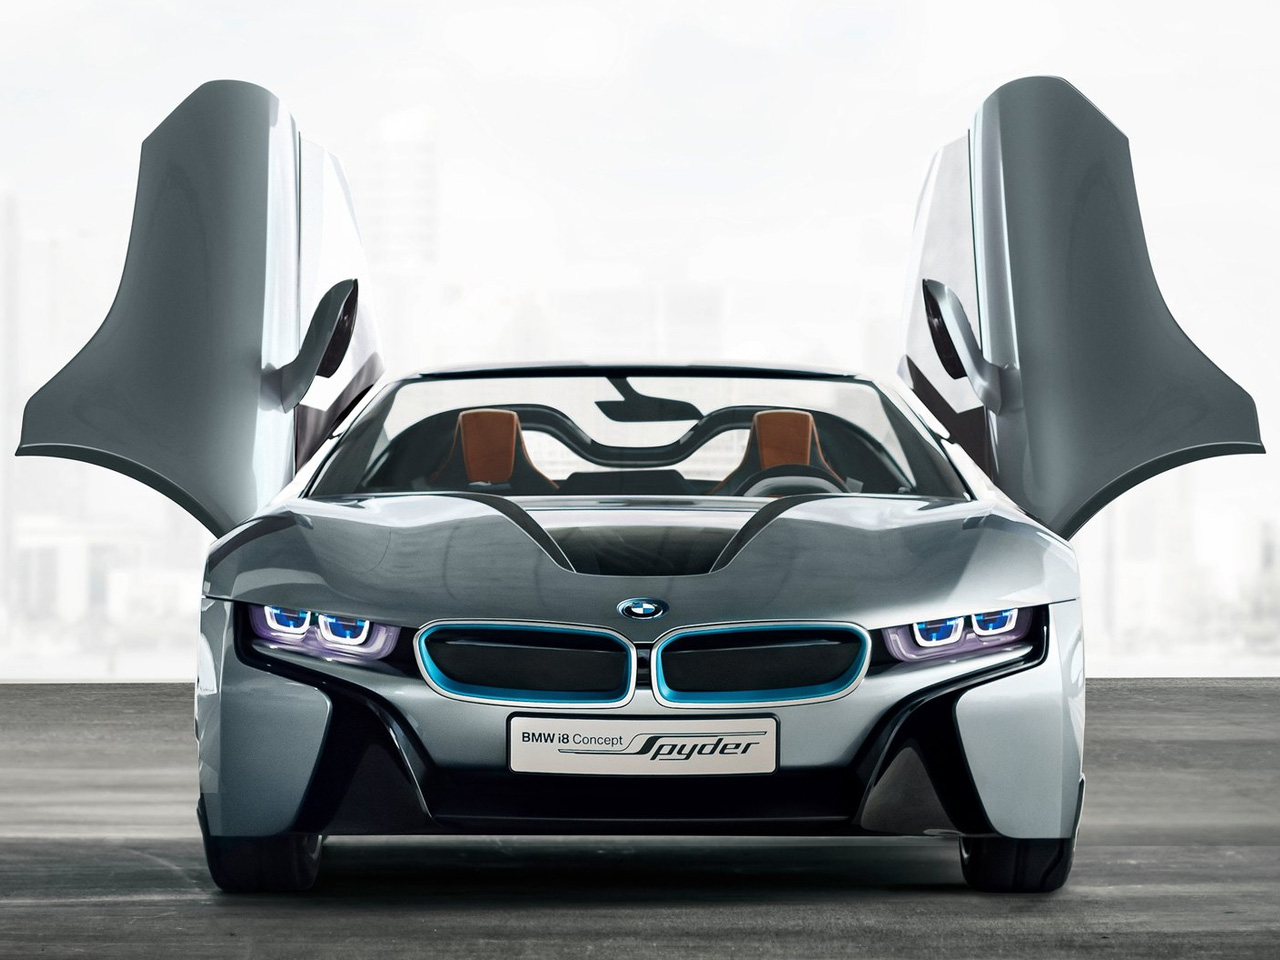 The first i8 featured LifeDrive architecture and the i8 Spyder also incorporates this technology. As a plug-in hybrid it uses lightweight modular ...